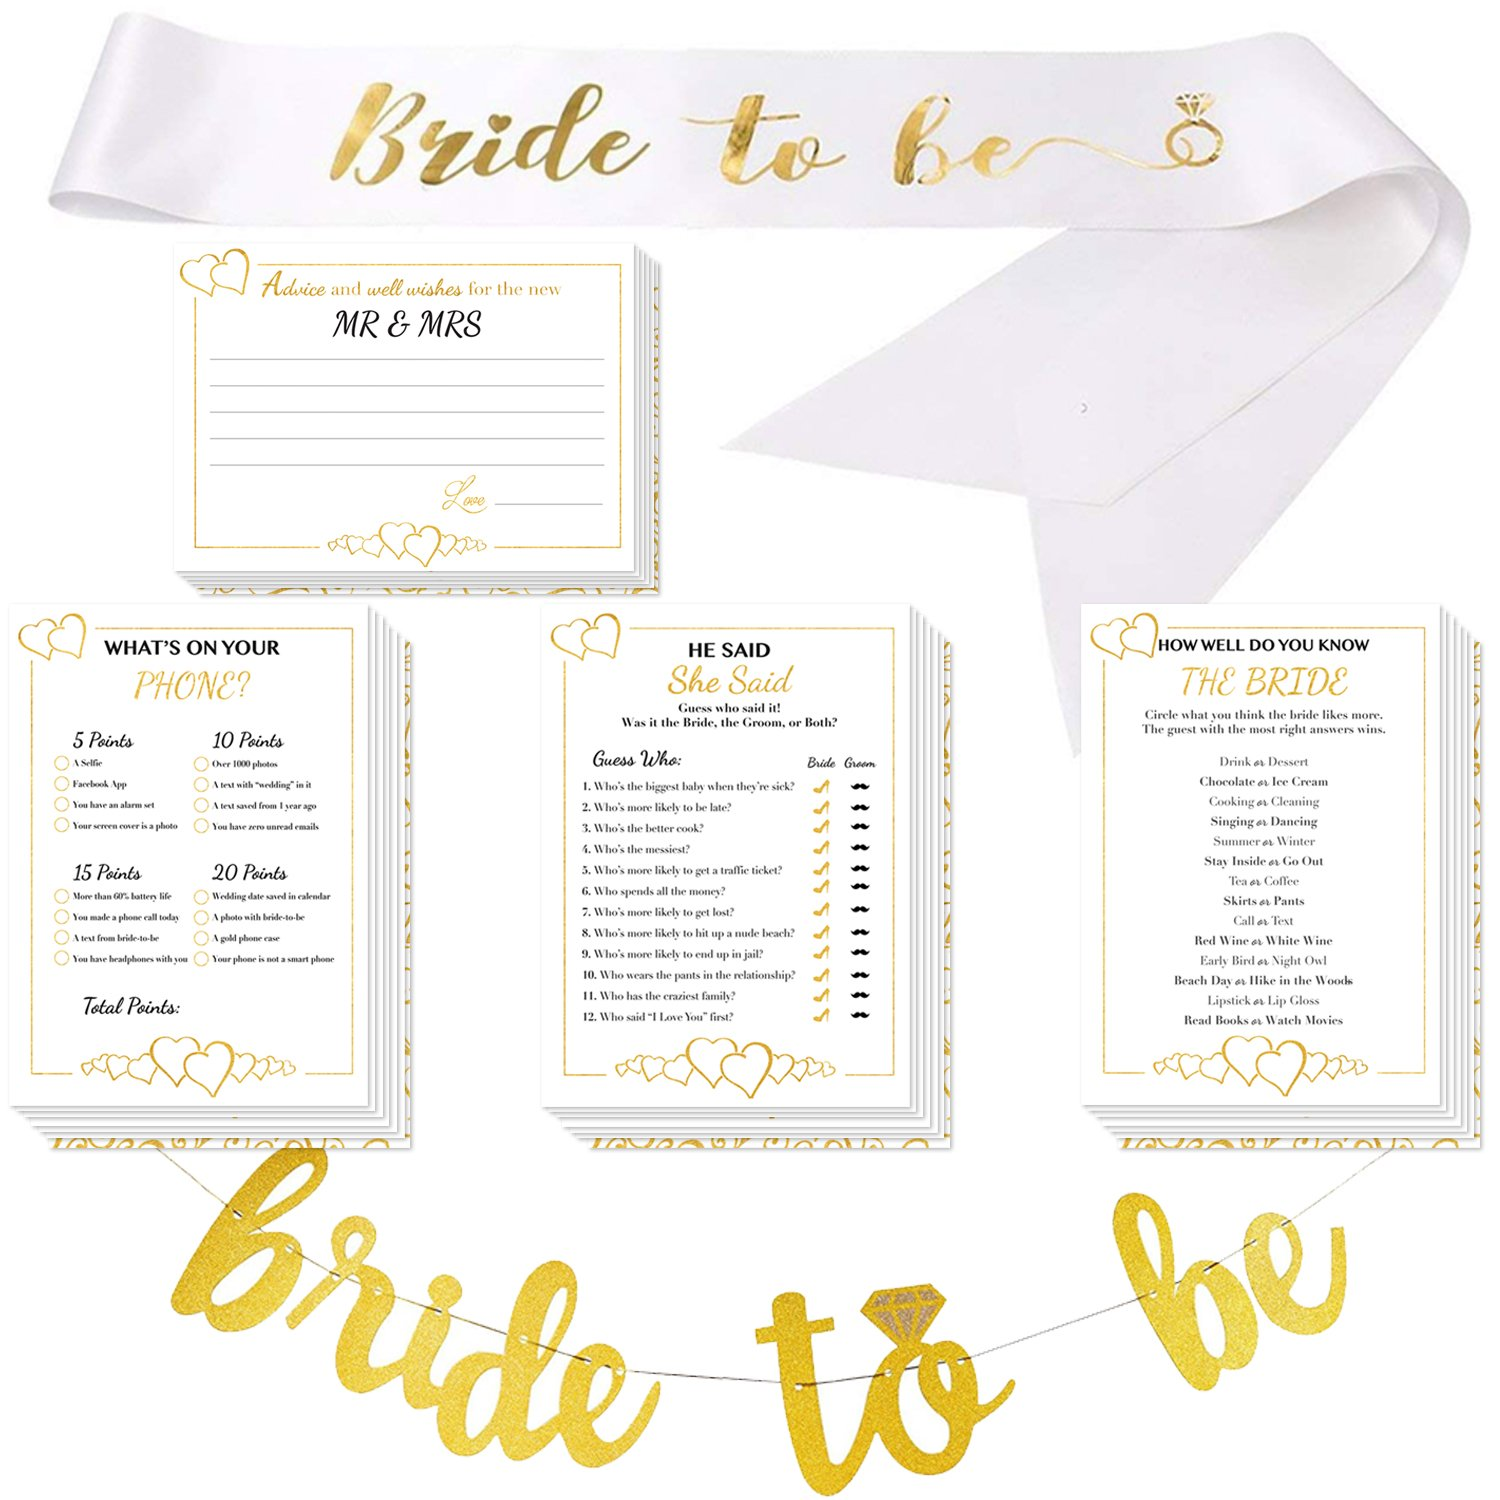 Bridal Shower Games with Bride-to-be Gold Banner & Bride to be Sash - 50x5 Wedding Party Cards | Alpine Celebrations by Alpine Celebrations